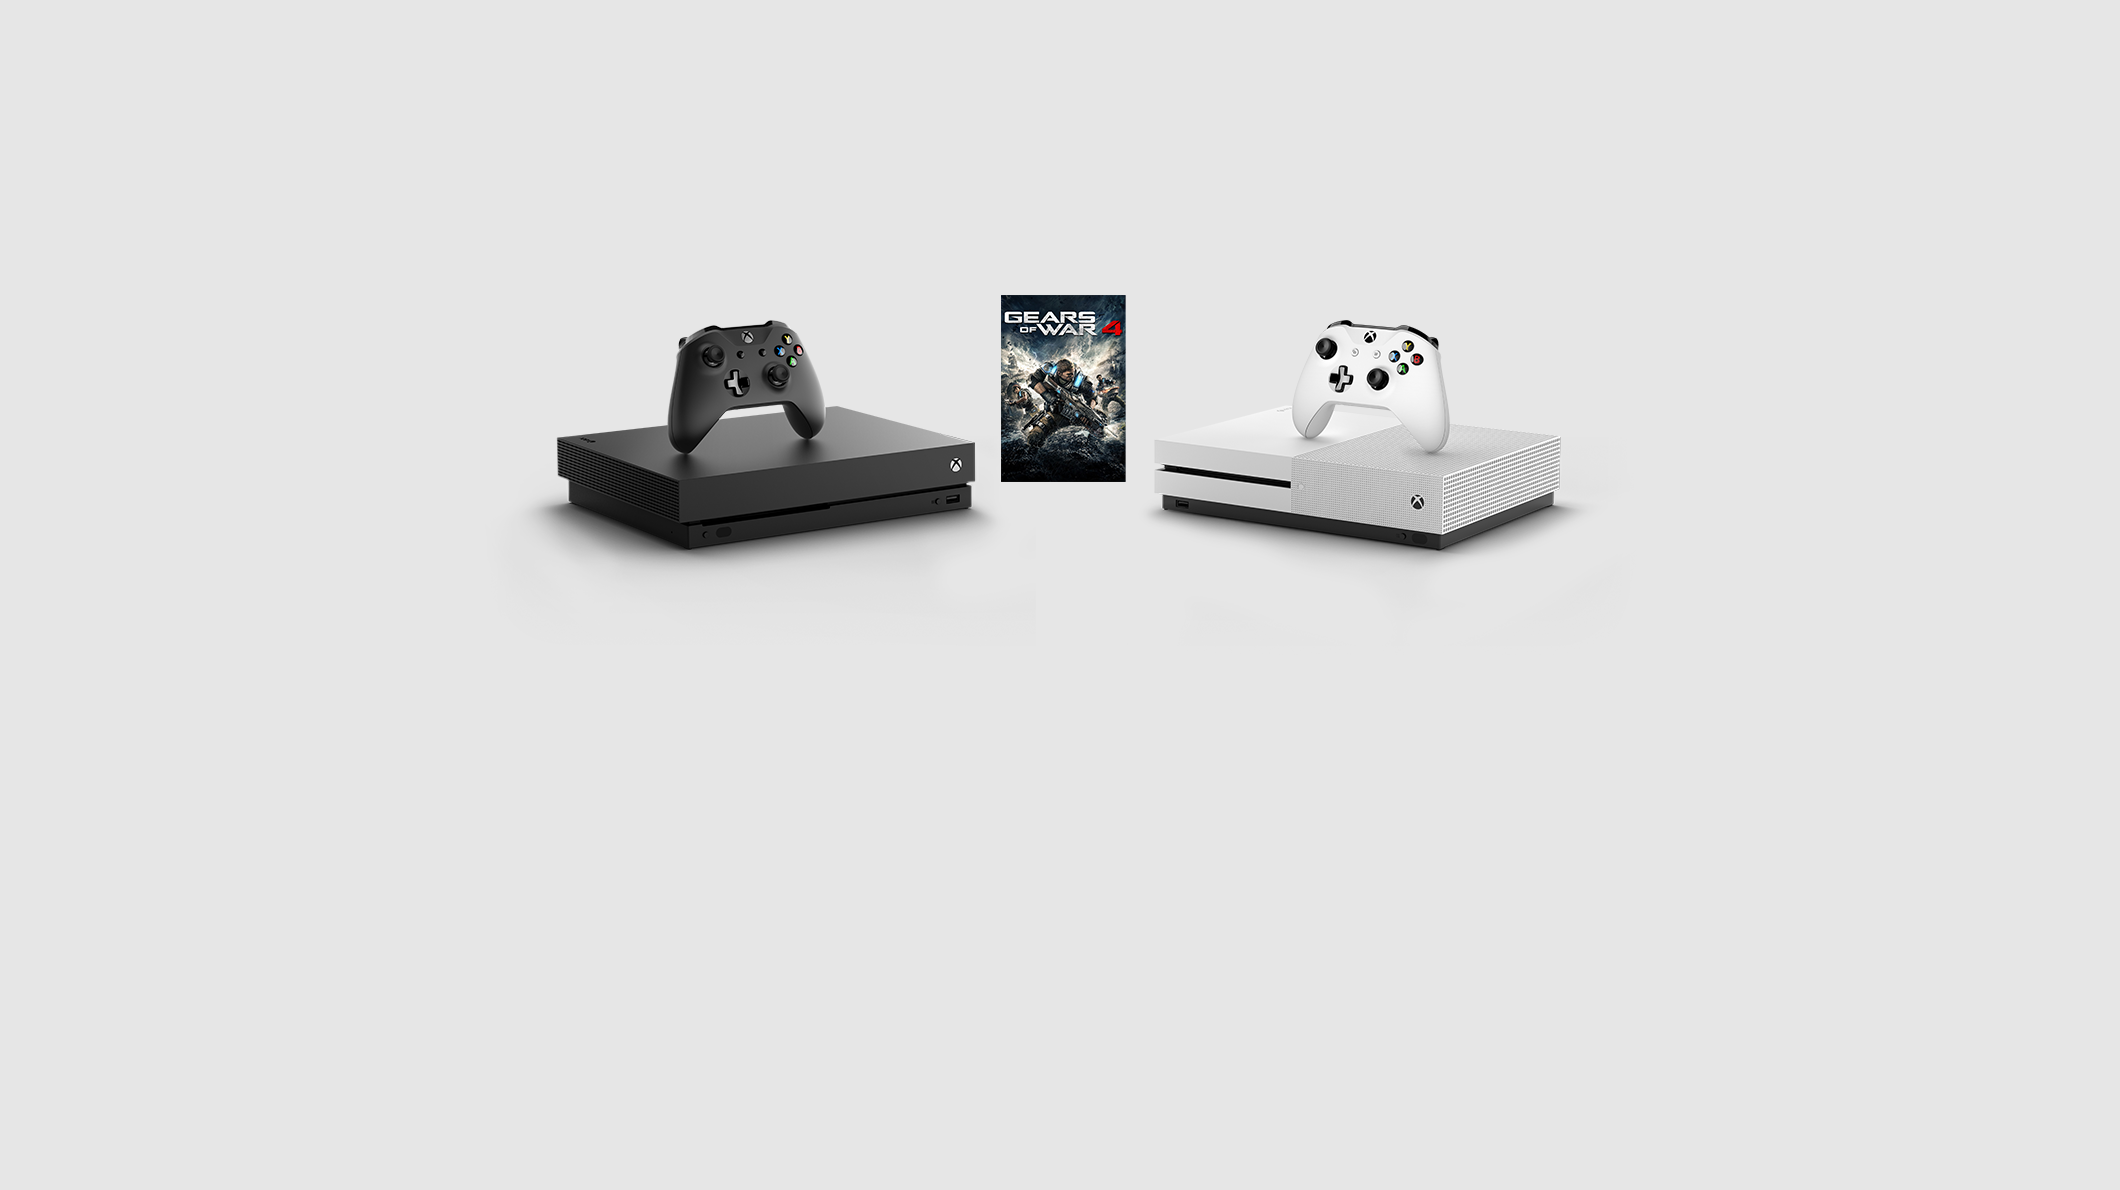 Xbox One X and Xbox One S consoles, and Gears of War digital game for Xbox One.